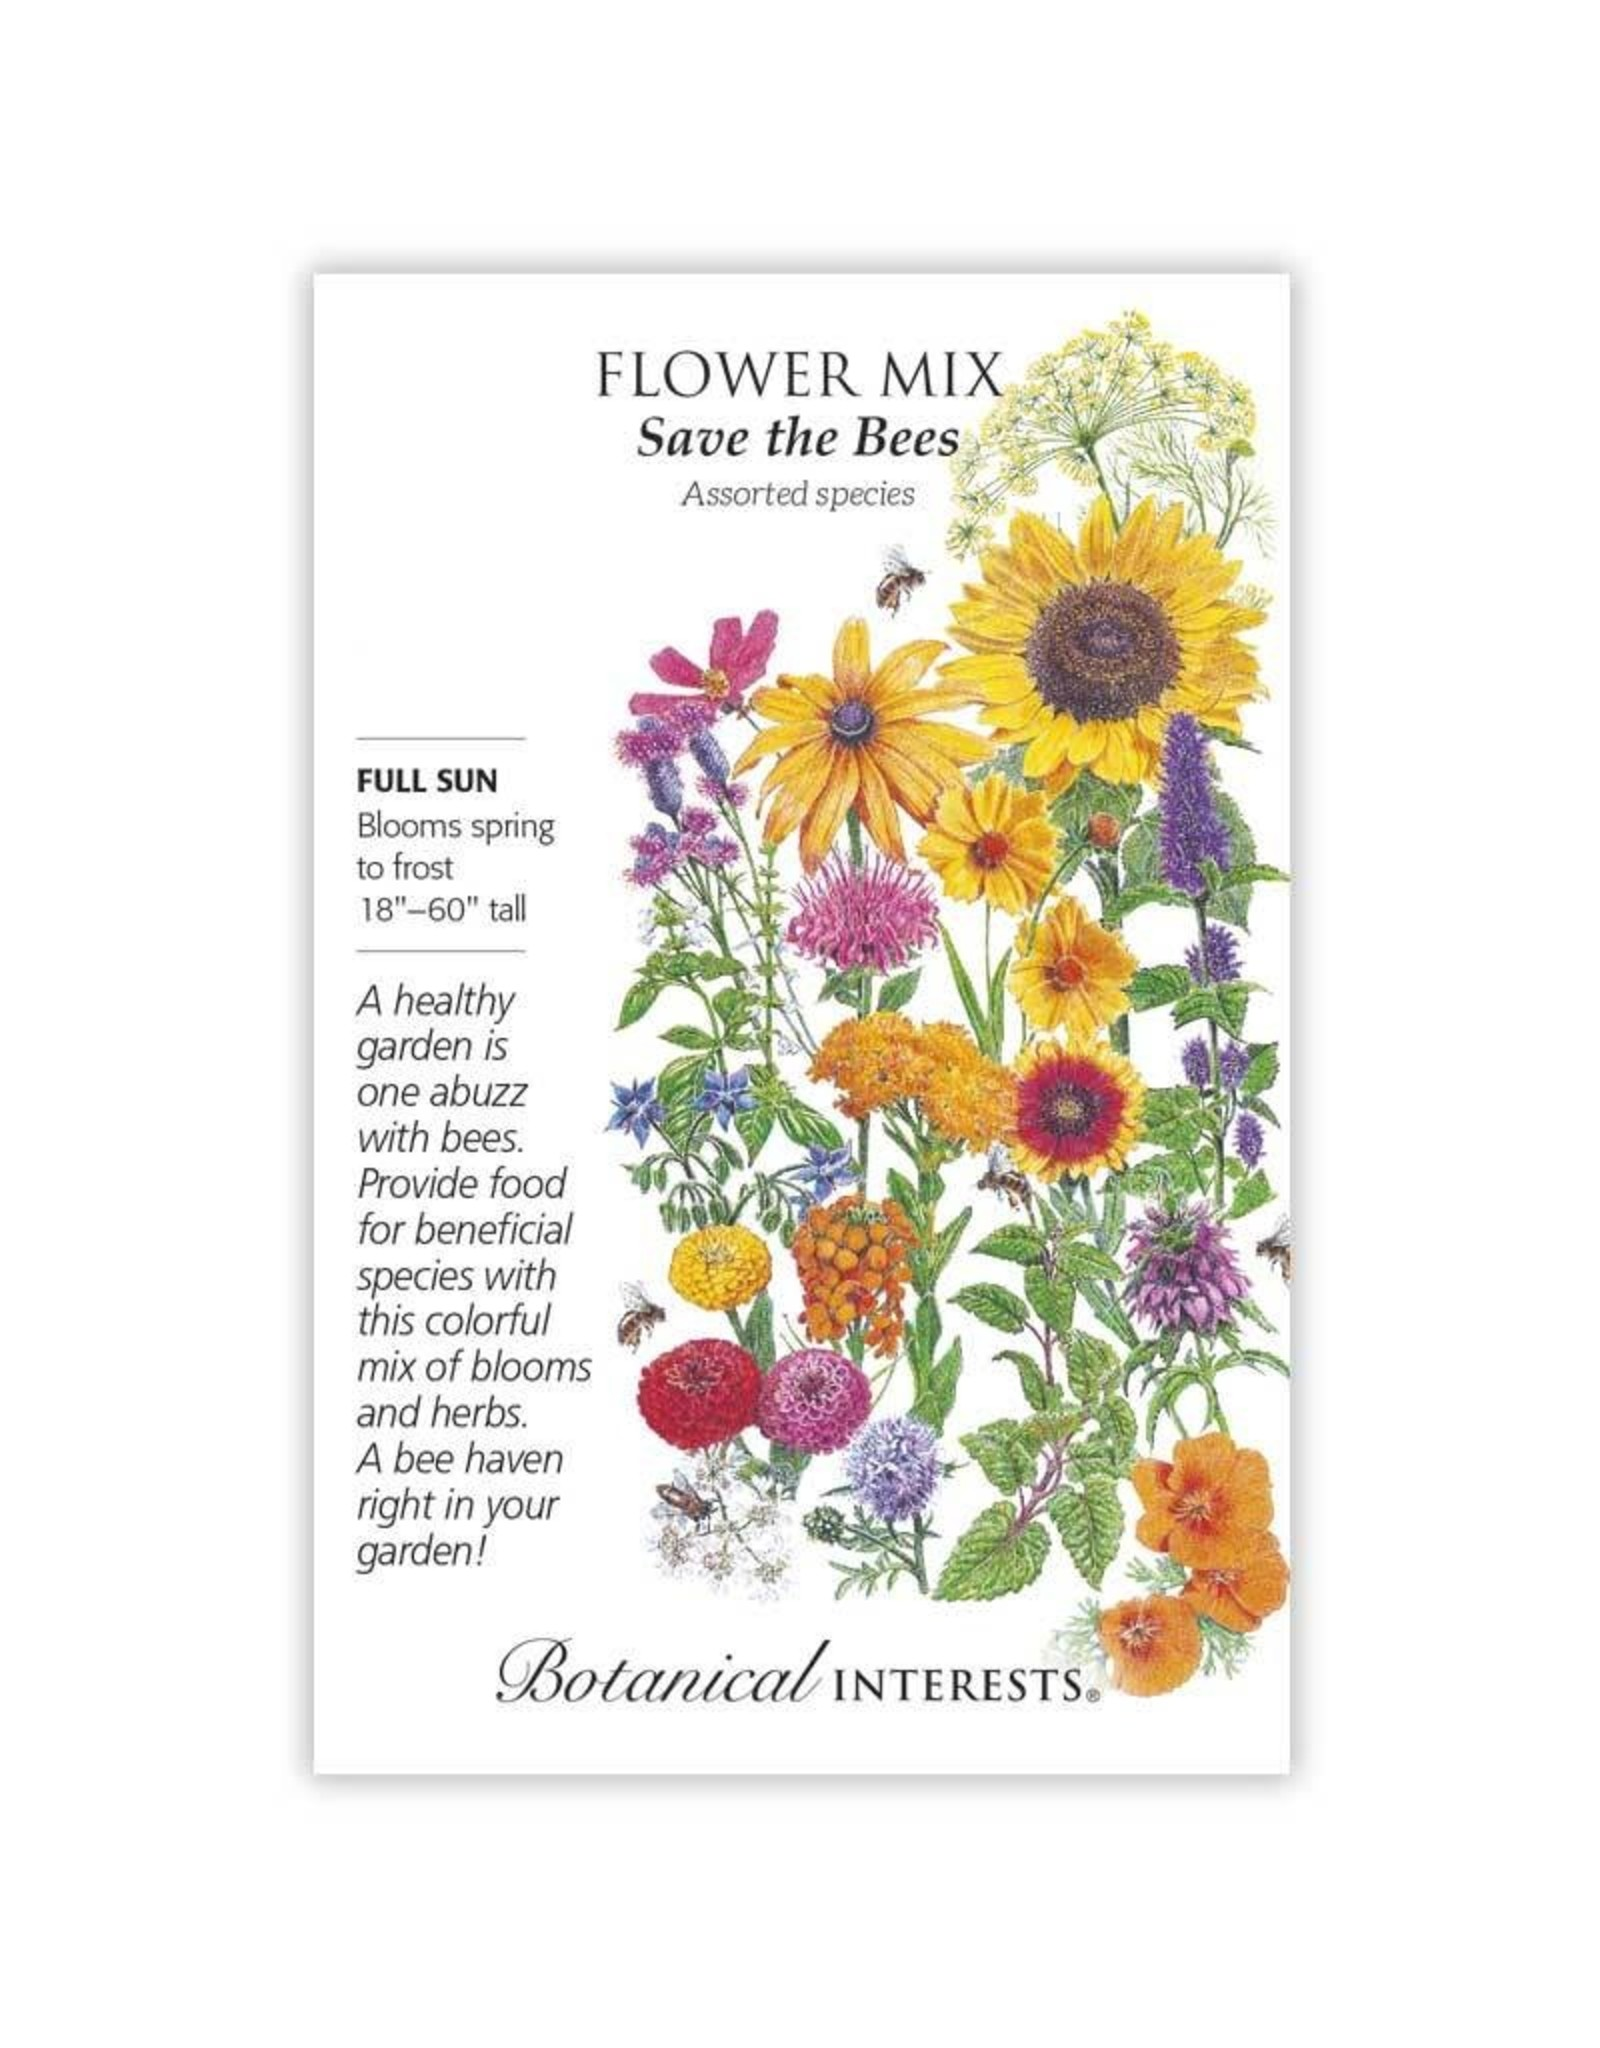 Seeds - Flower Mix Save the Bees